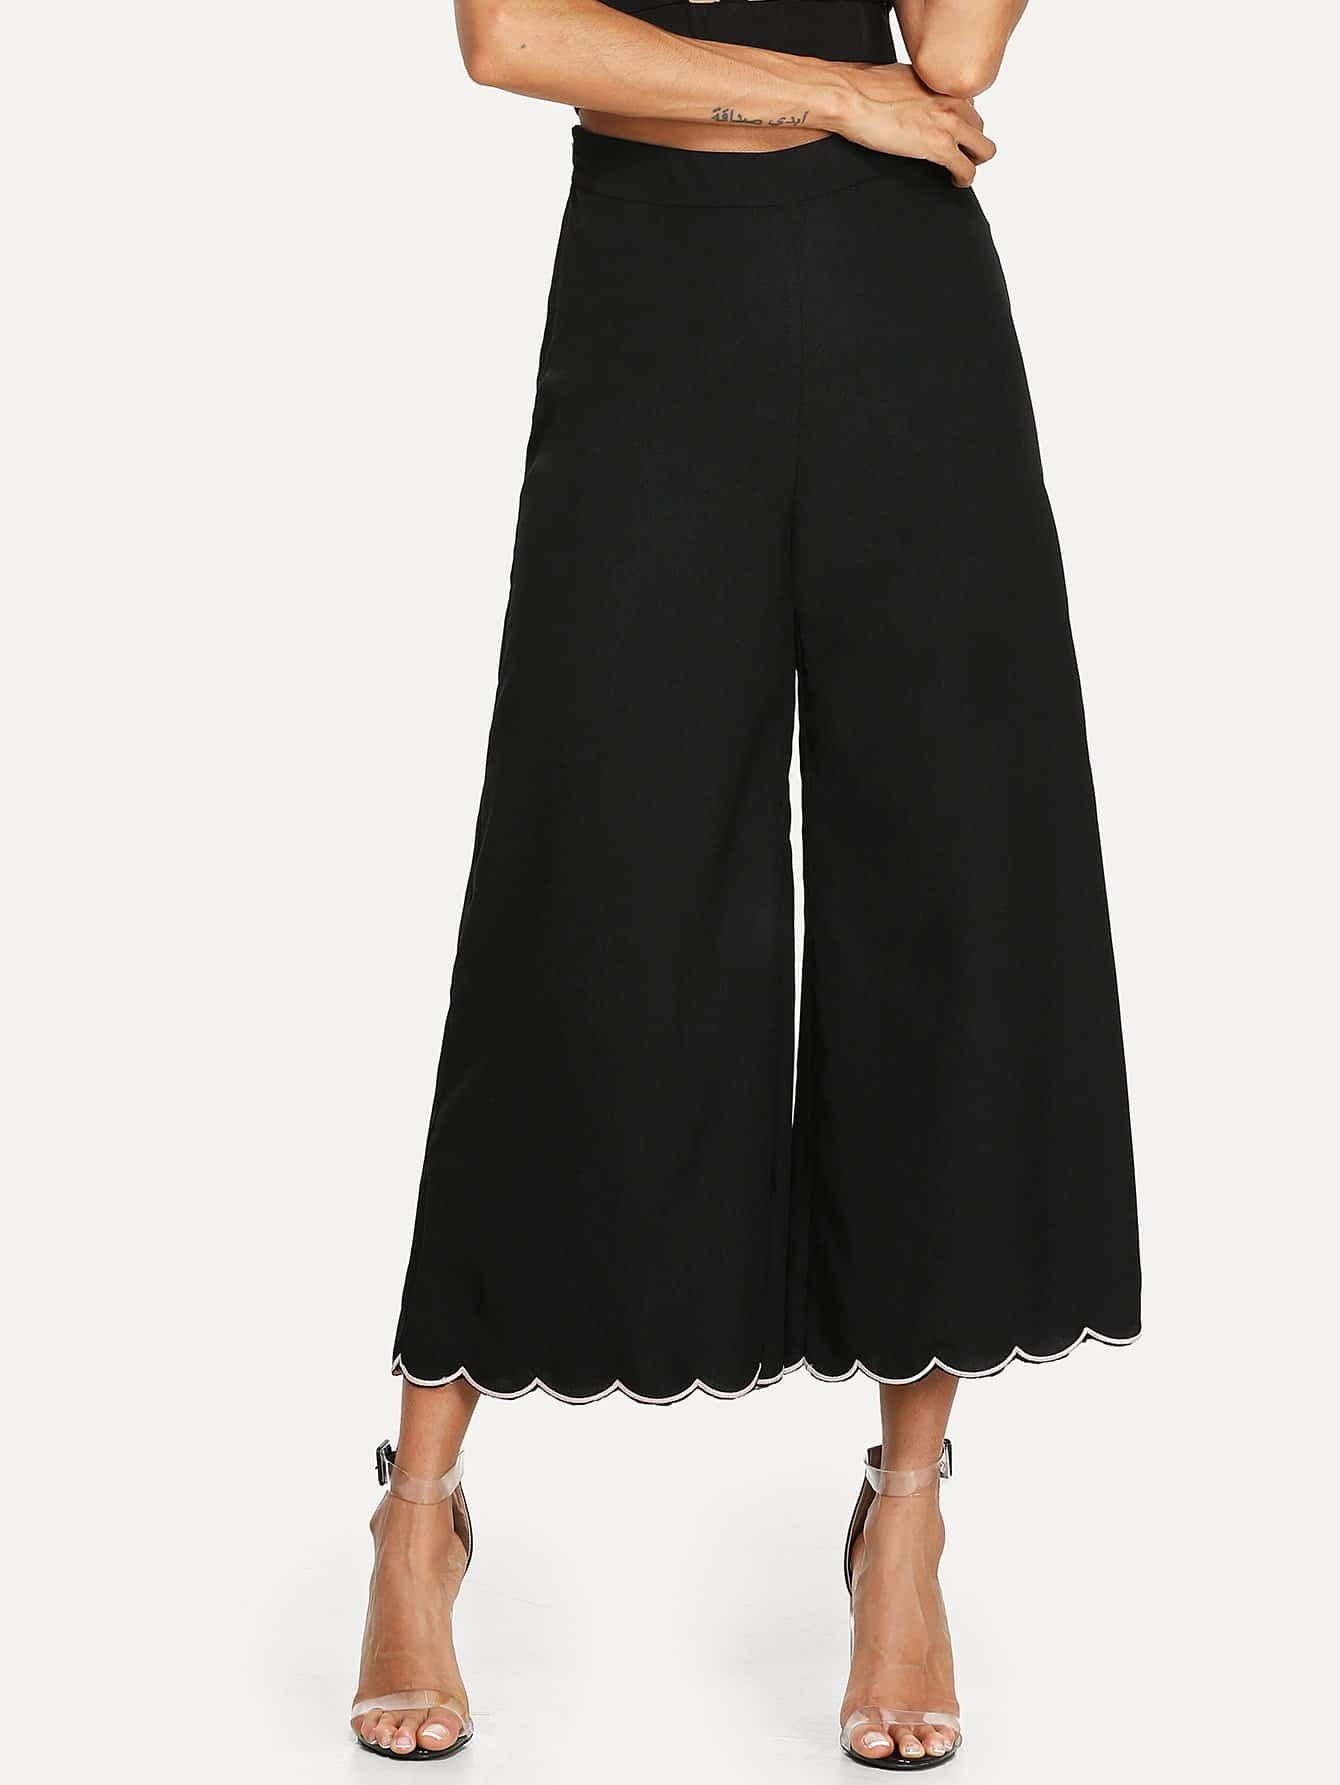 Scallop Flare Hem Pants gingham embroidery scallop hem pants